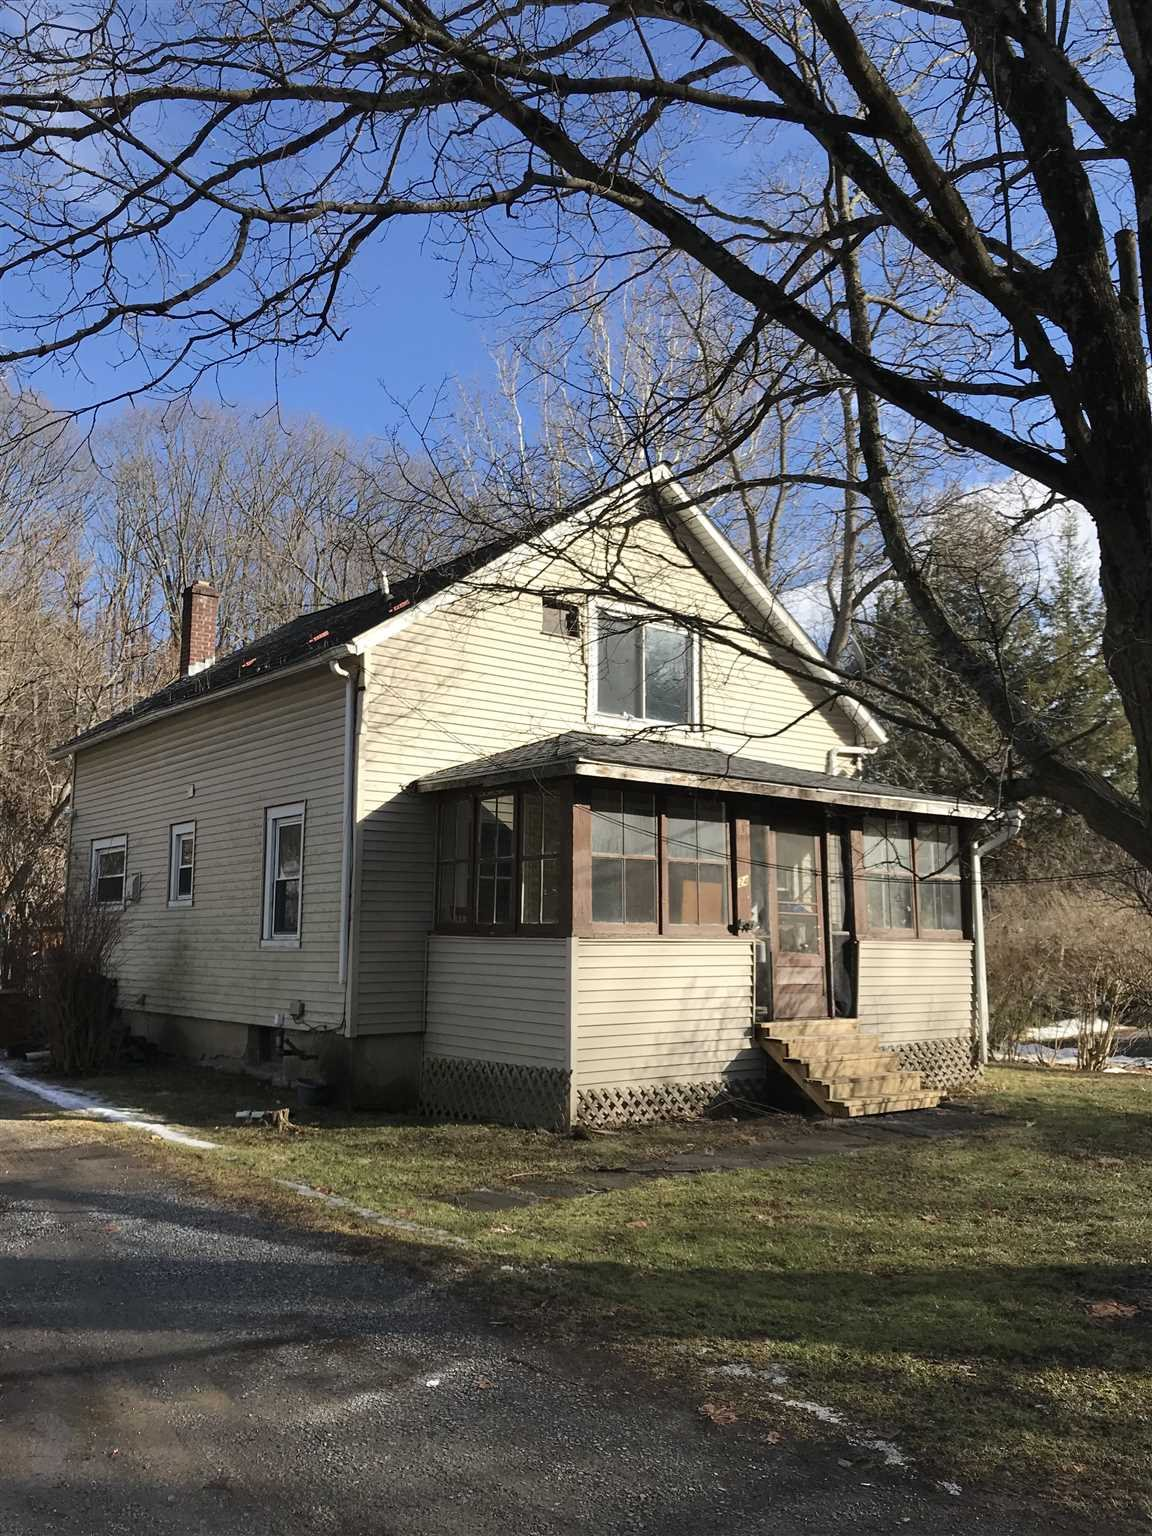 Single Family Home for Sale at 24 WEST ROAD 24 WEST ROAD Pleasant Valley, New York 12569 United States